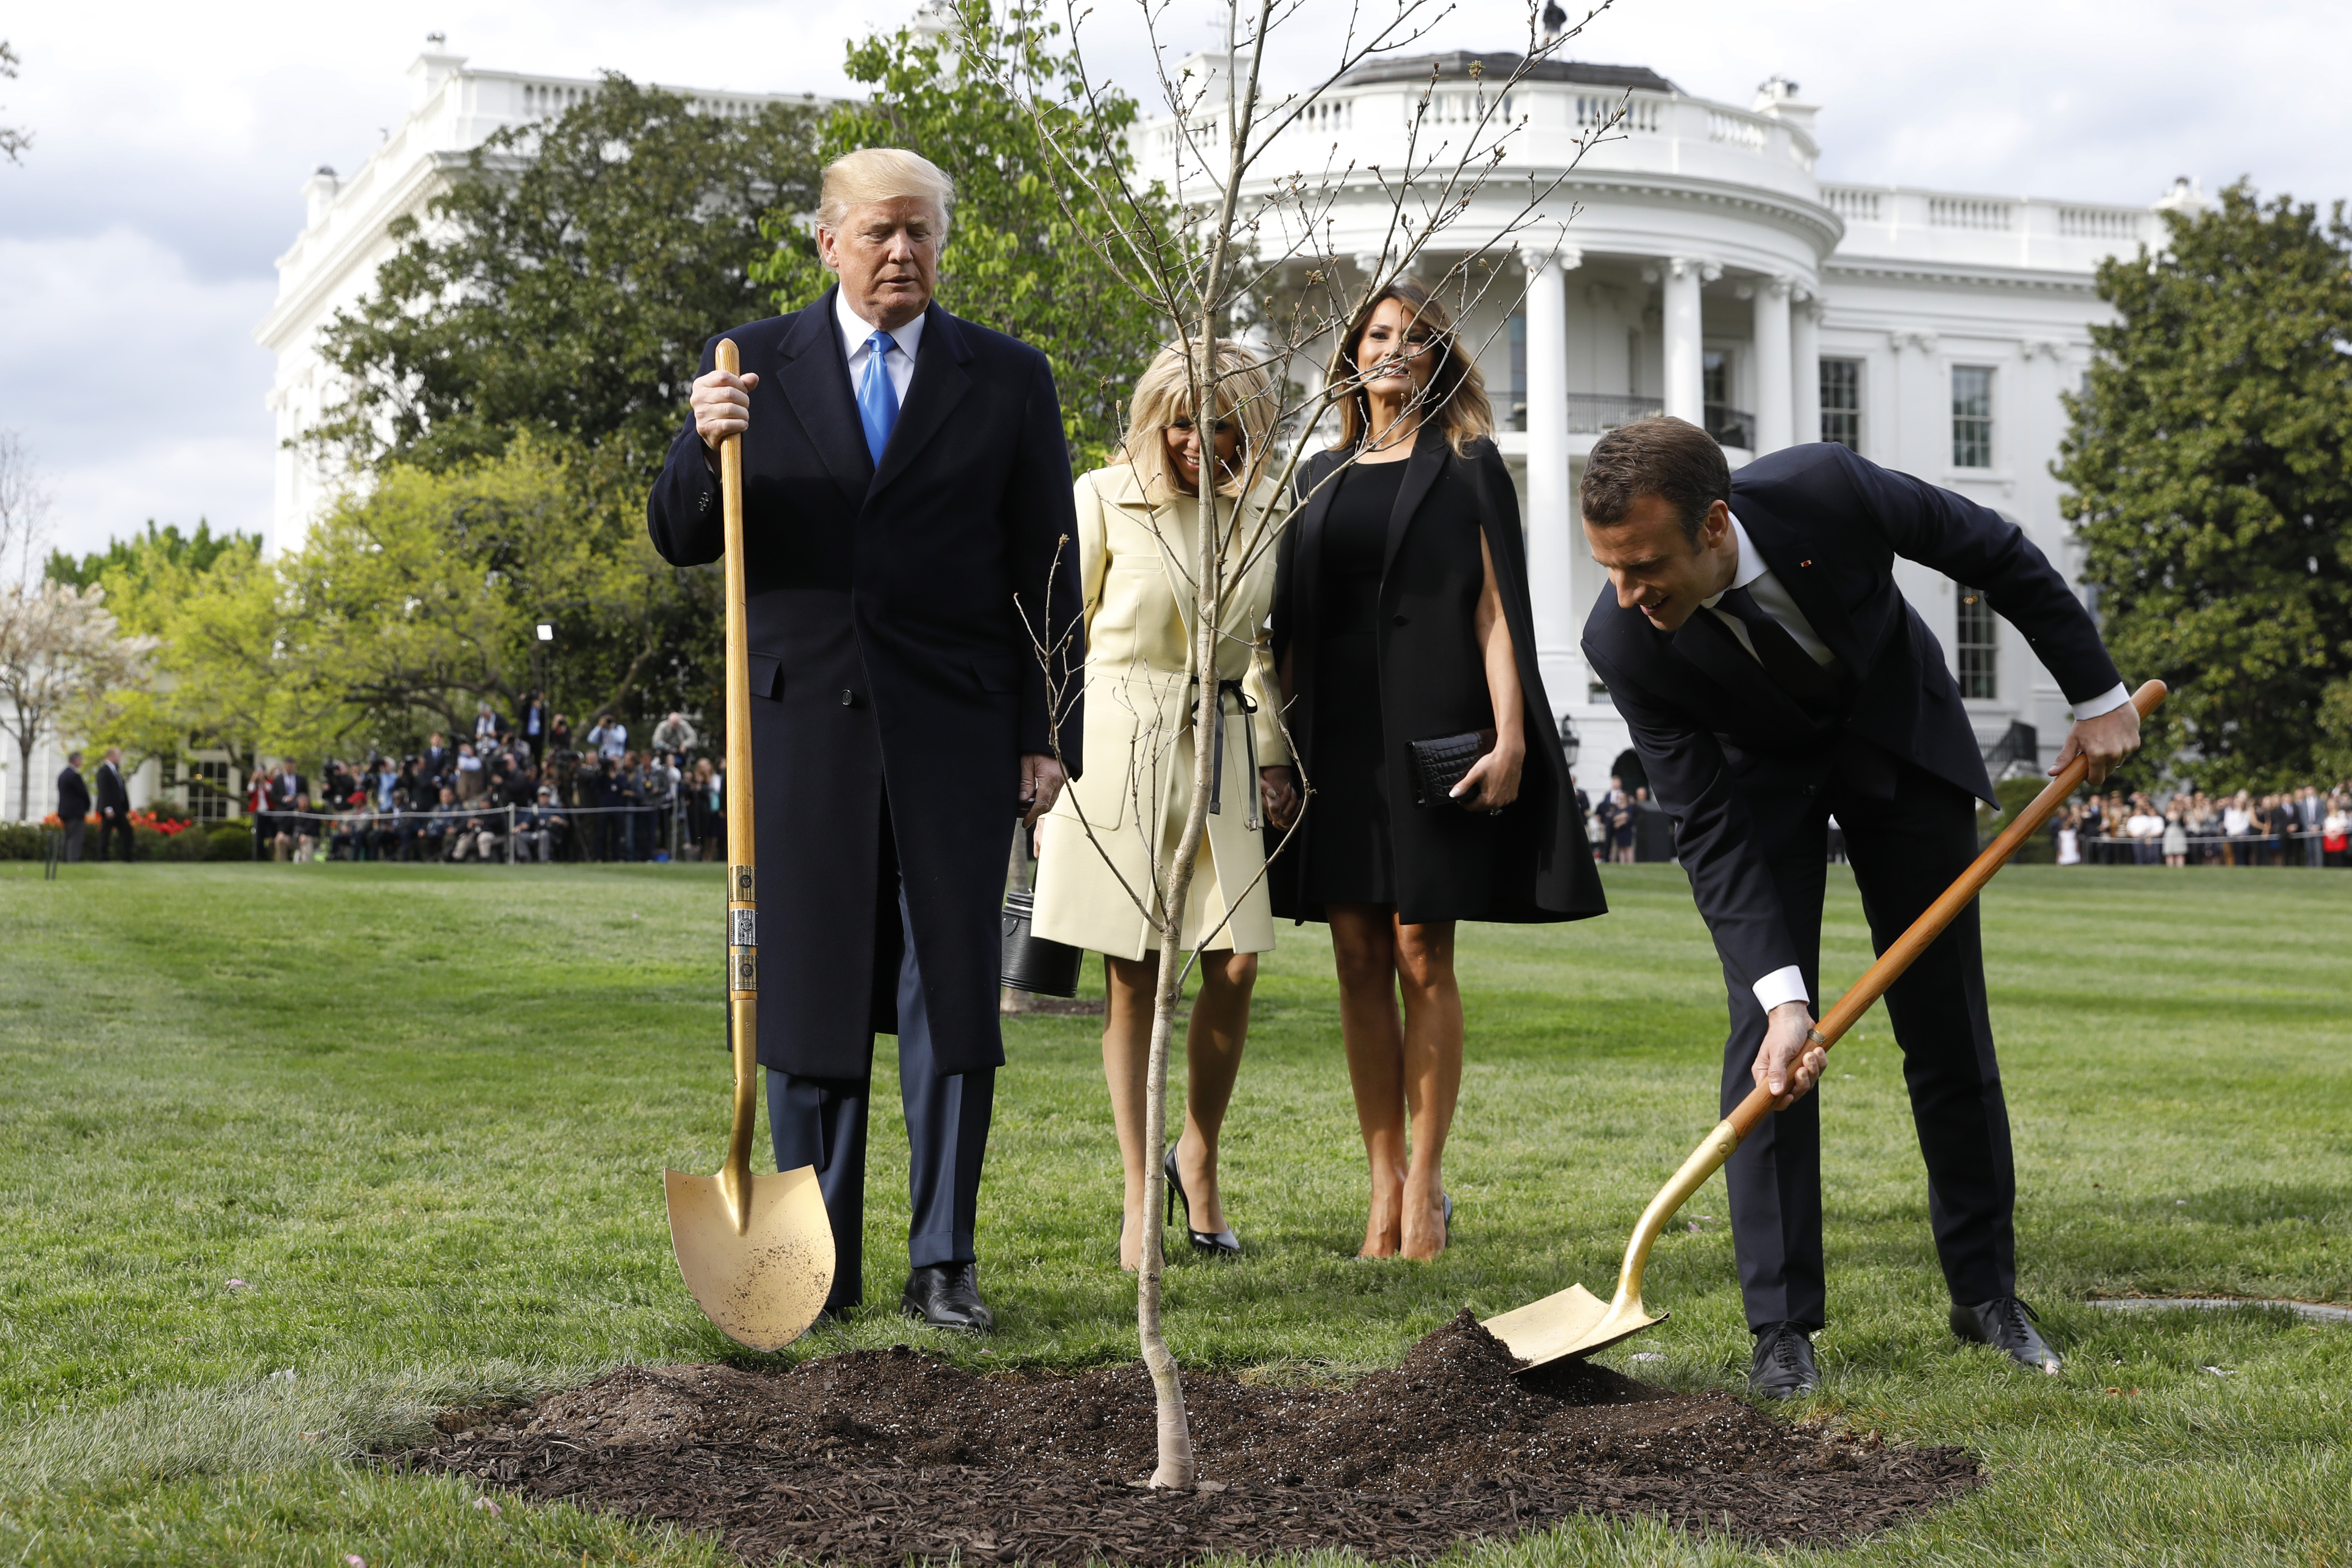 Trump and Macron shovel dirt onto sapling on White House lawn